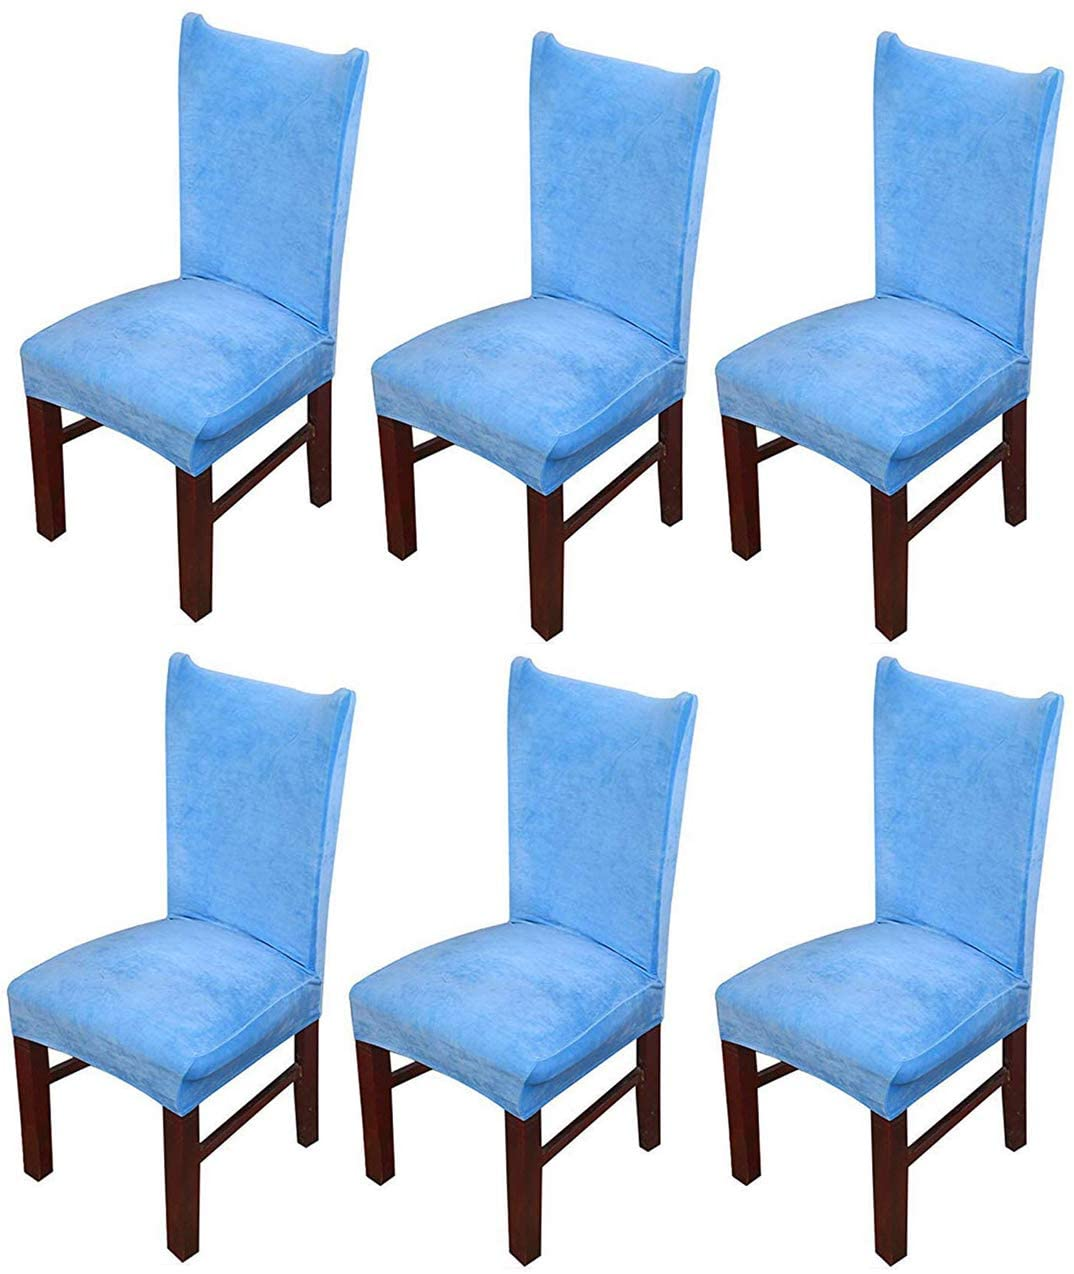 MOCAA Velvet Stretch Dining Room Chair Covers Thick Soft Removable Dining Chair Slipcovers Set of 6 M008 (Sky Blue)